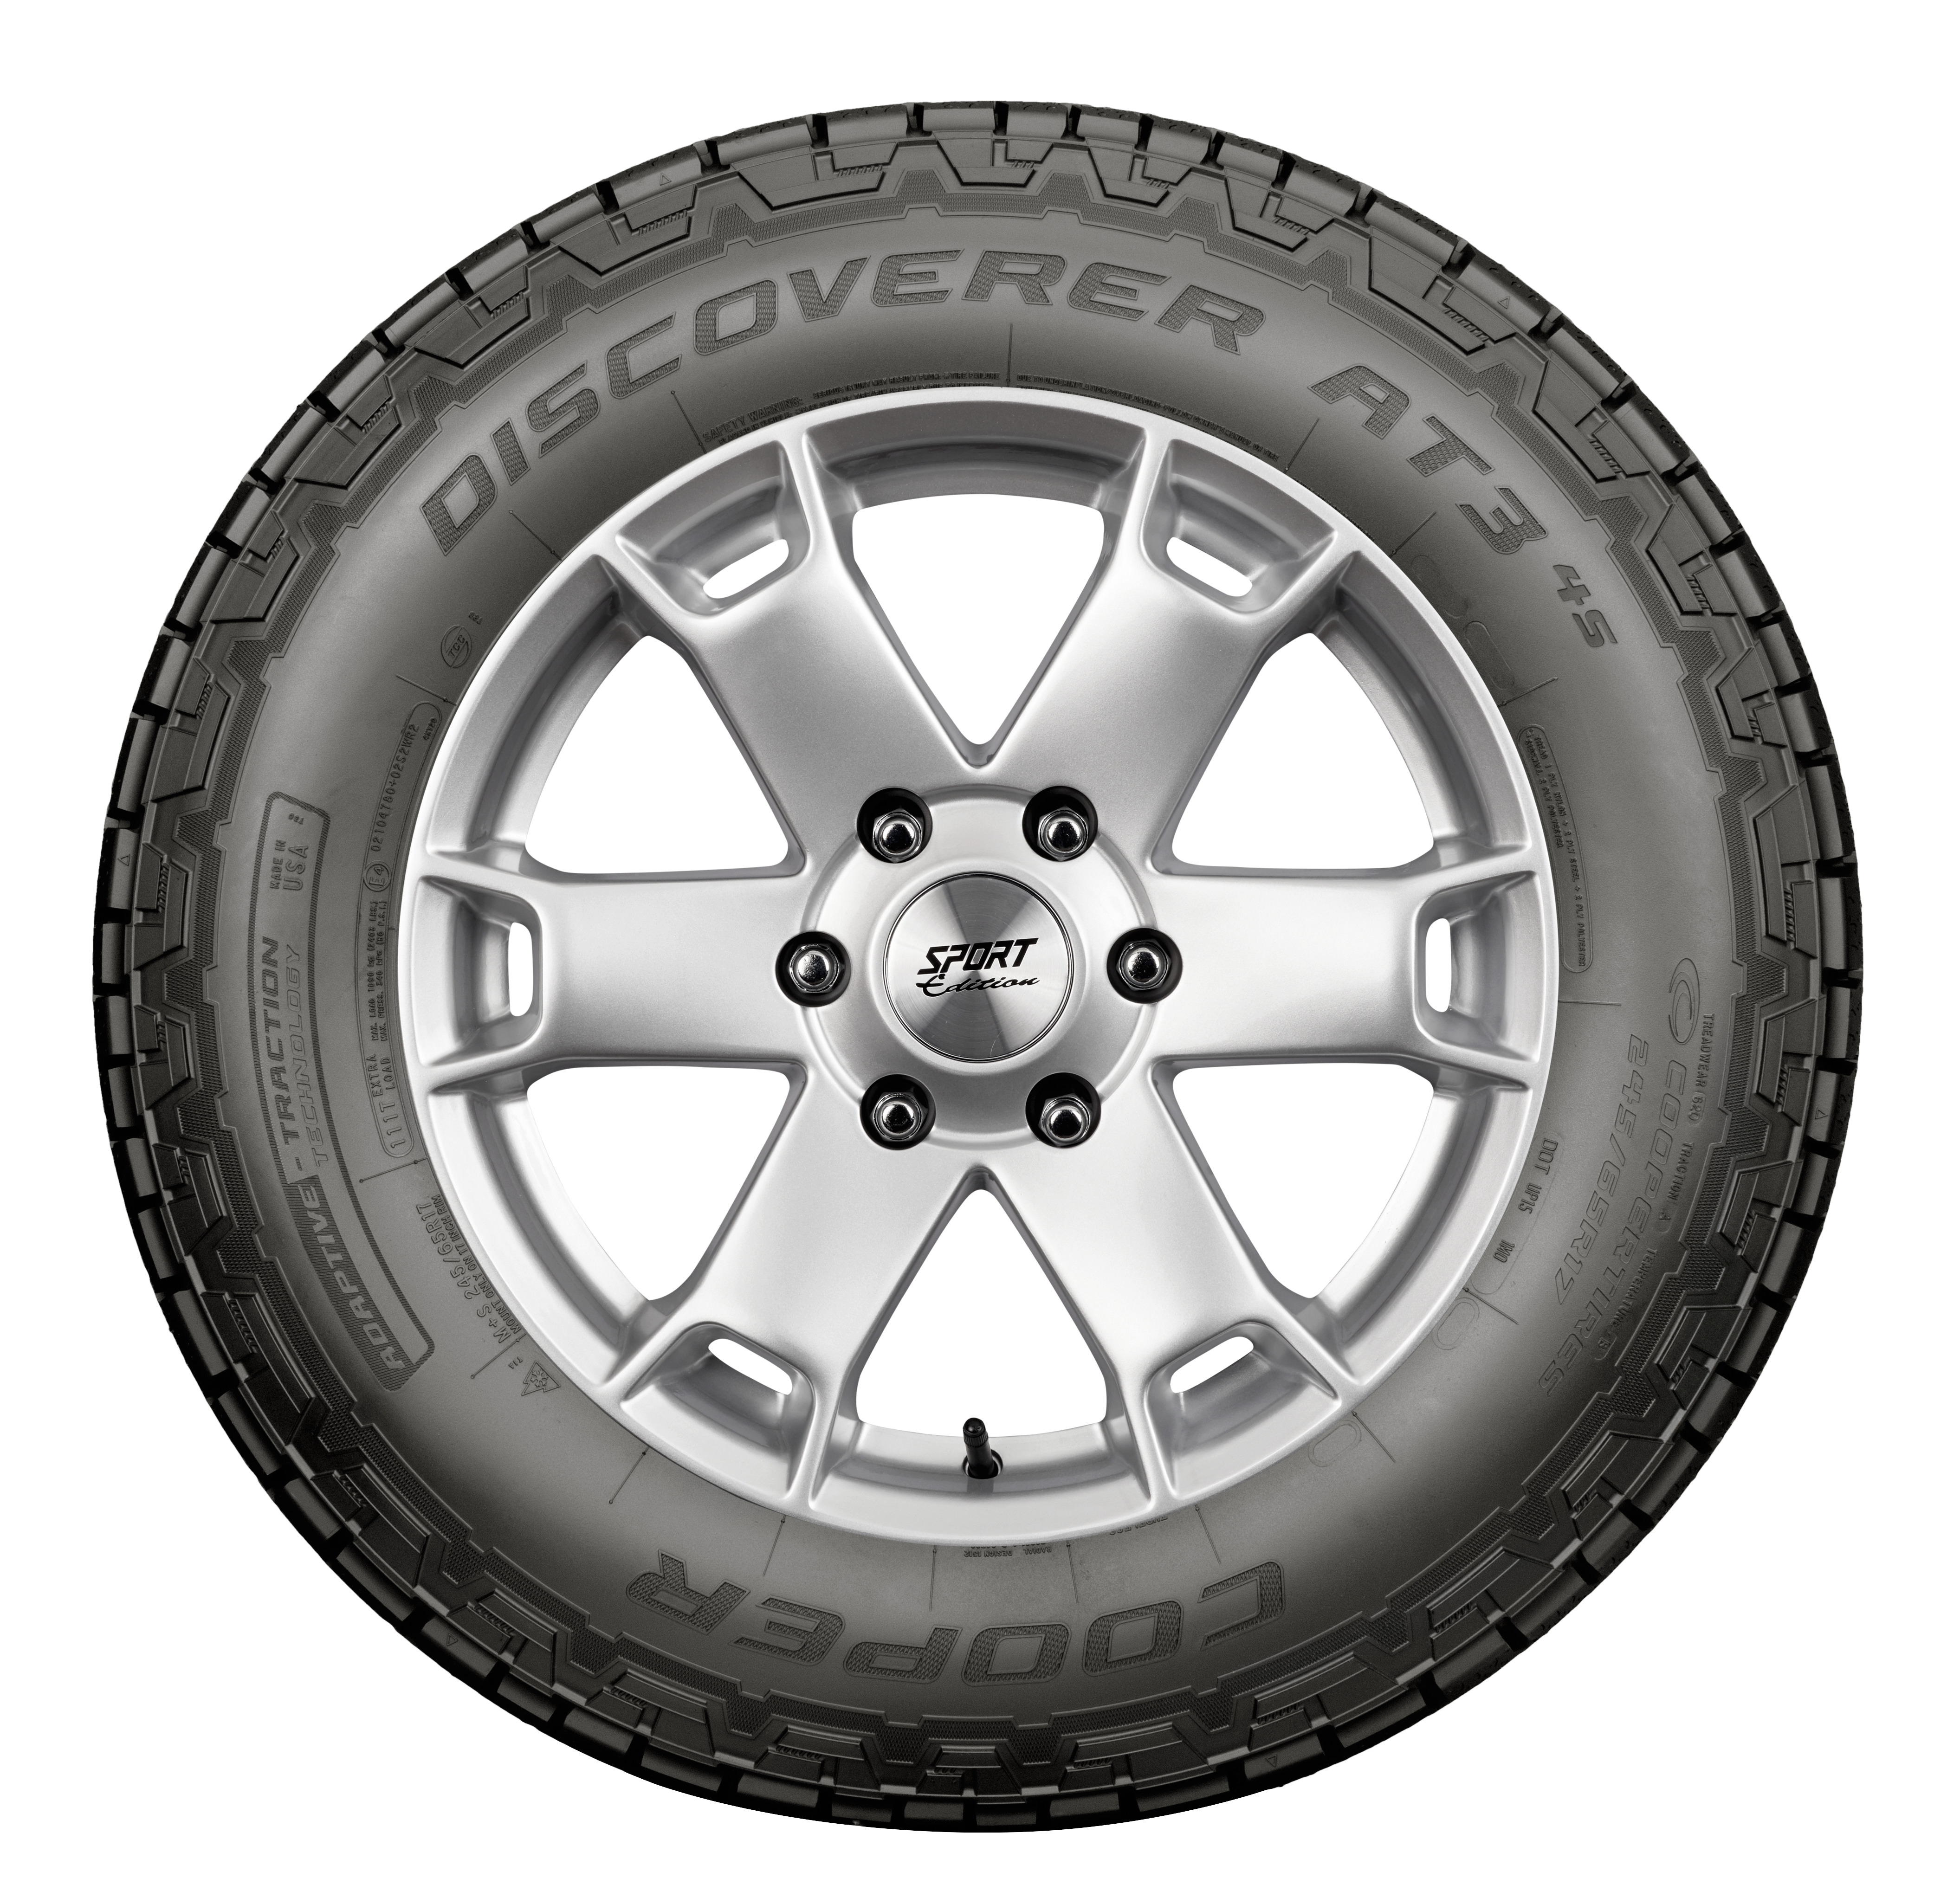 Cooper Discoverer At3 4s All Terrain Tire 26575r16 116t